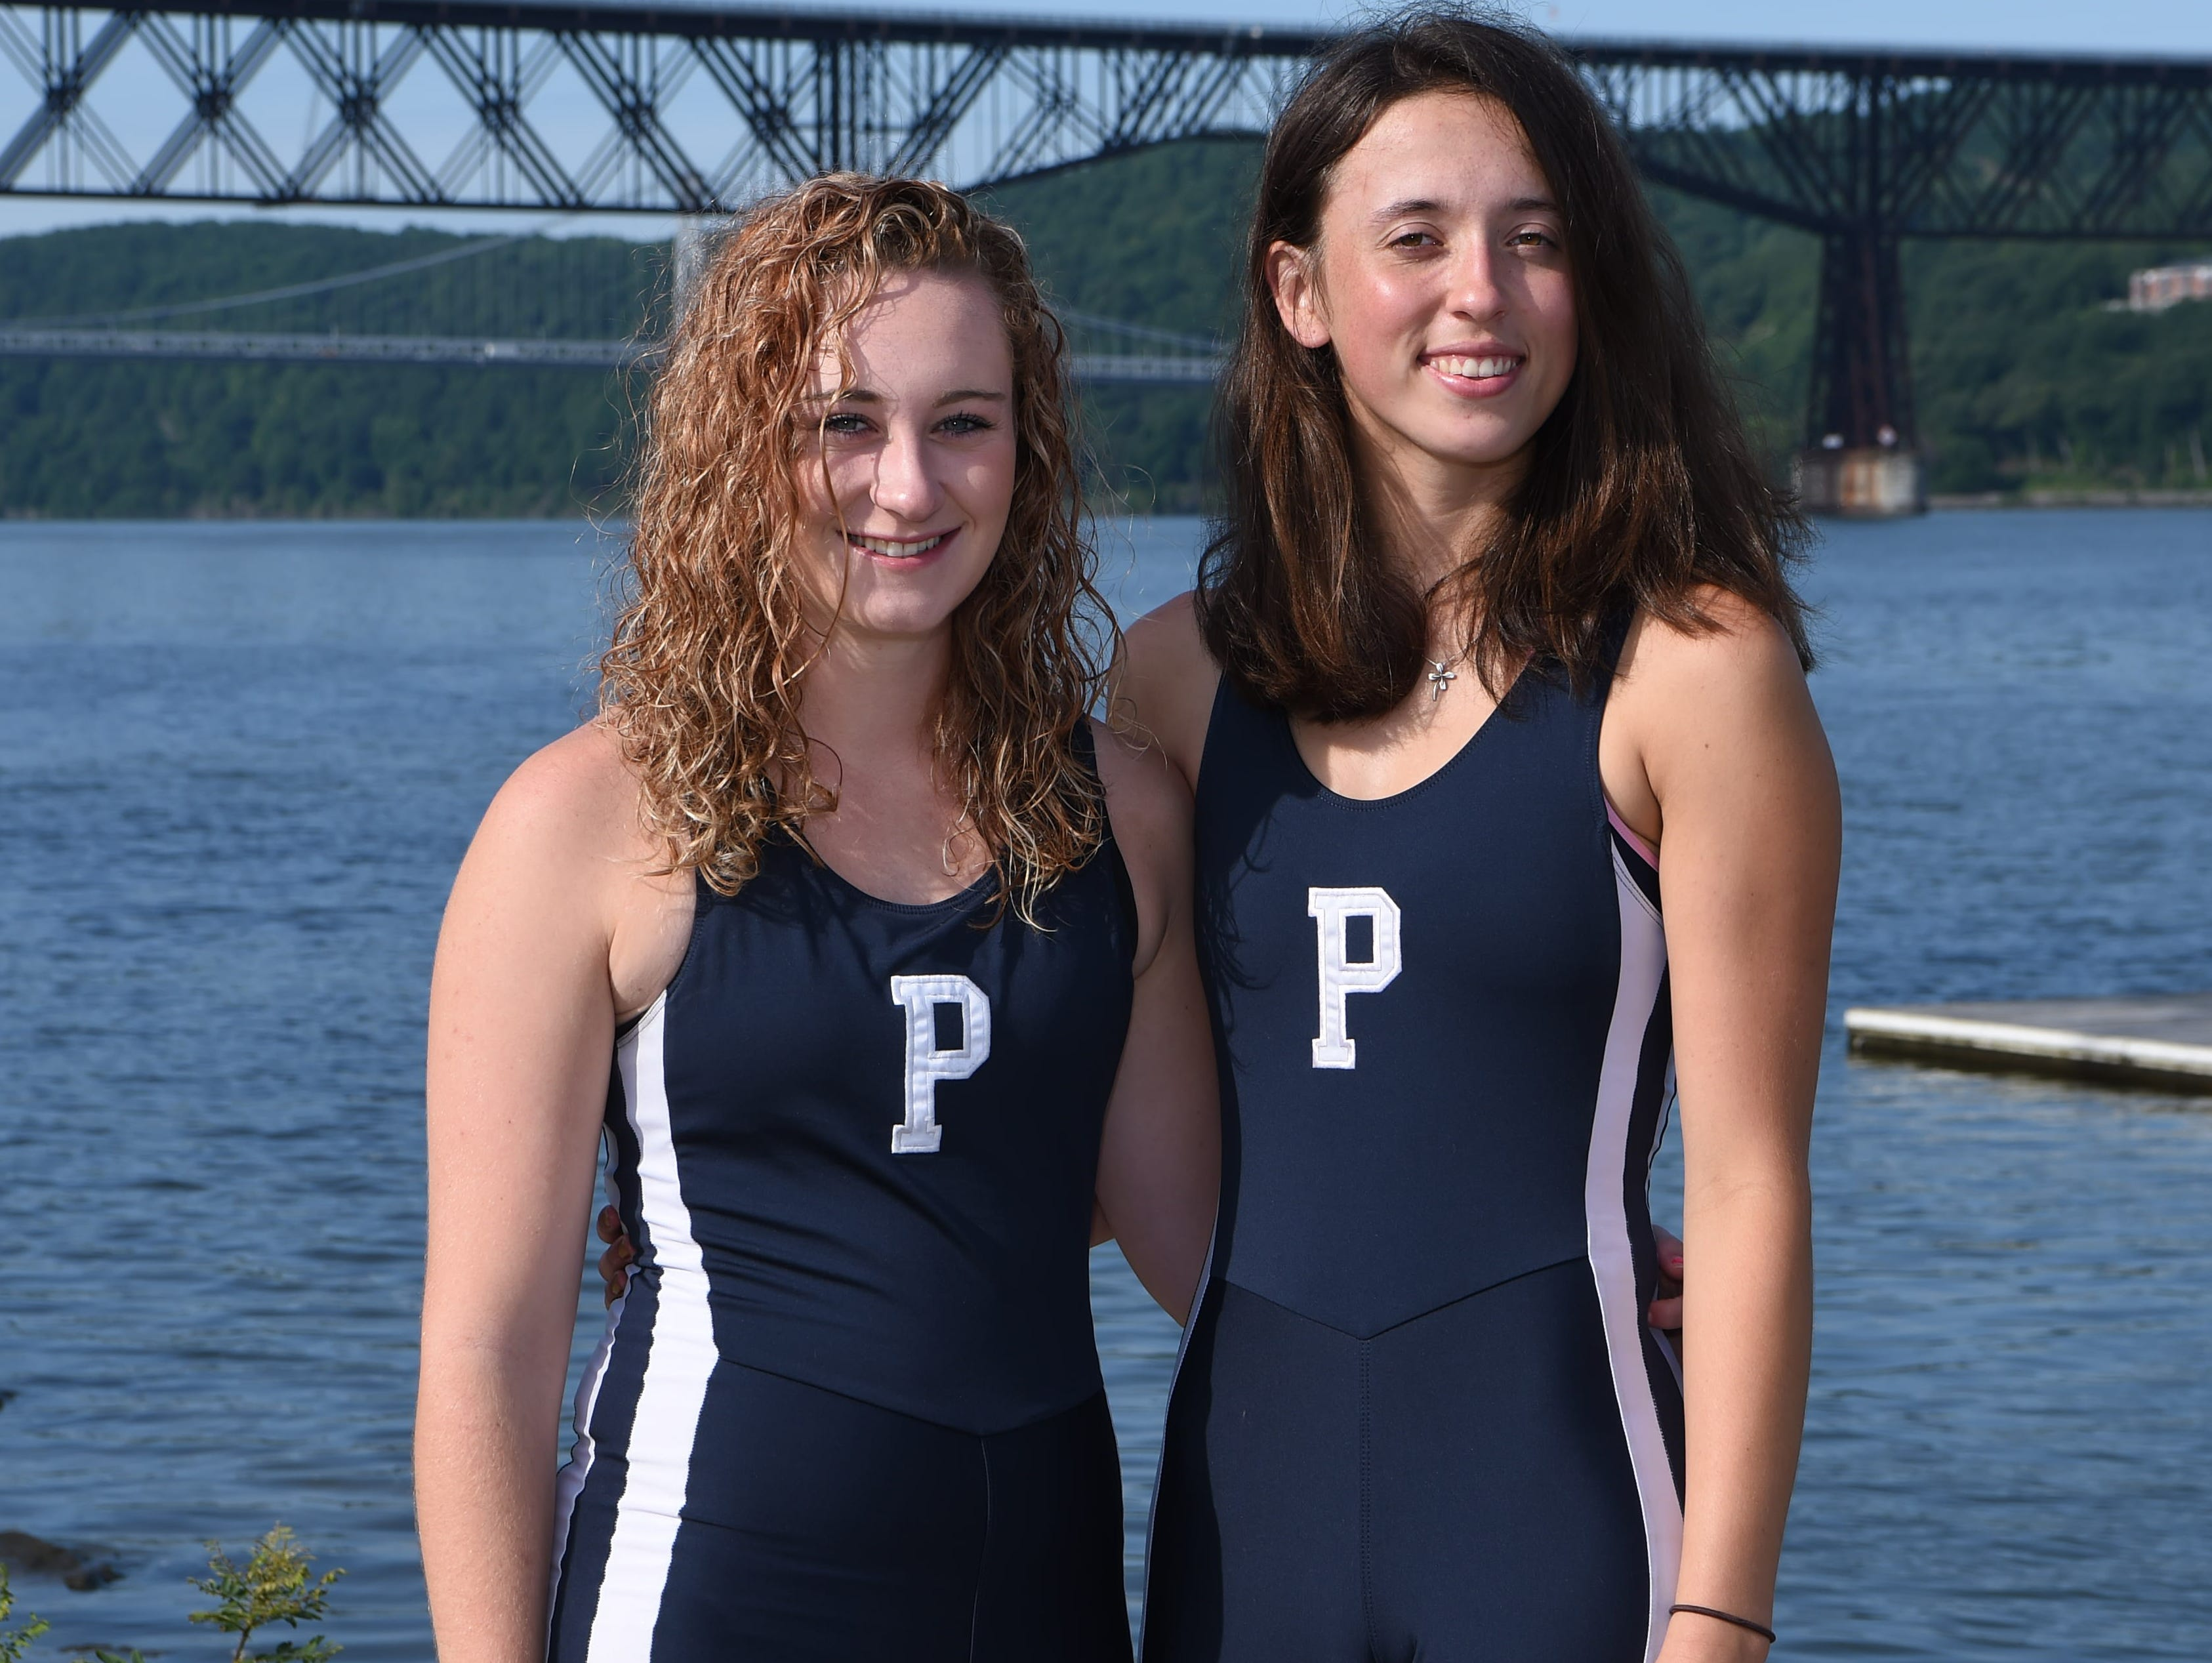 Devin Tully, left, 18, and Fiona Mauer, right, 17, both from the City of Poughkeepsie and graduates of Poughkeepsie High School, pose on the Hudson River. They make up the Girls Crew Boat of the Year.